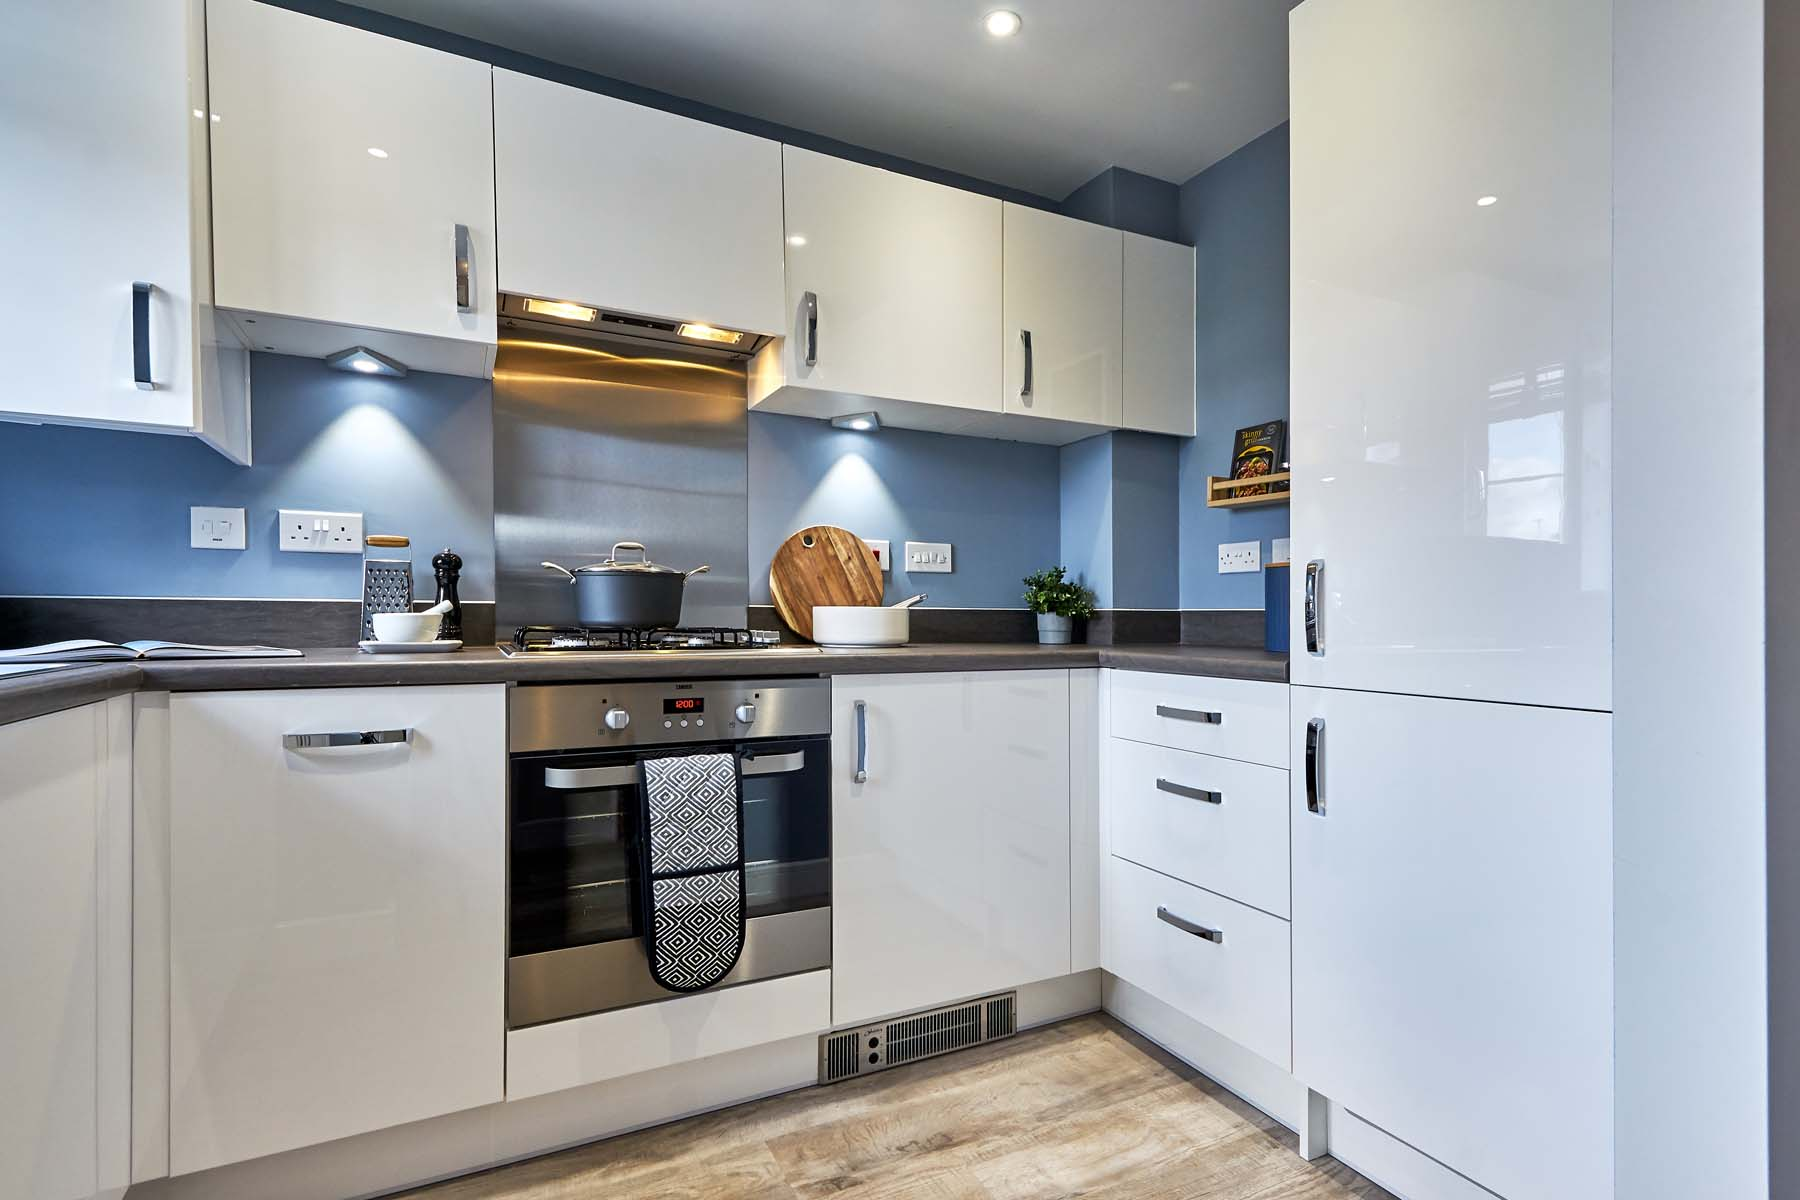 Beckford kitchen corner TWWM-LygonGreen-Becksford-SH-photography-Mar20